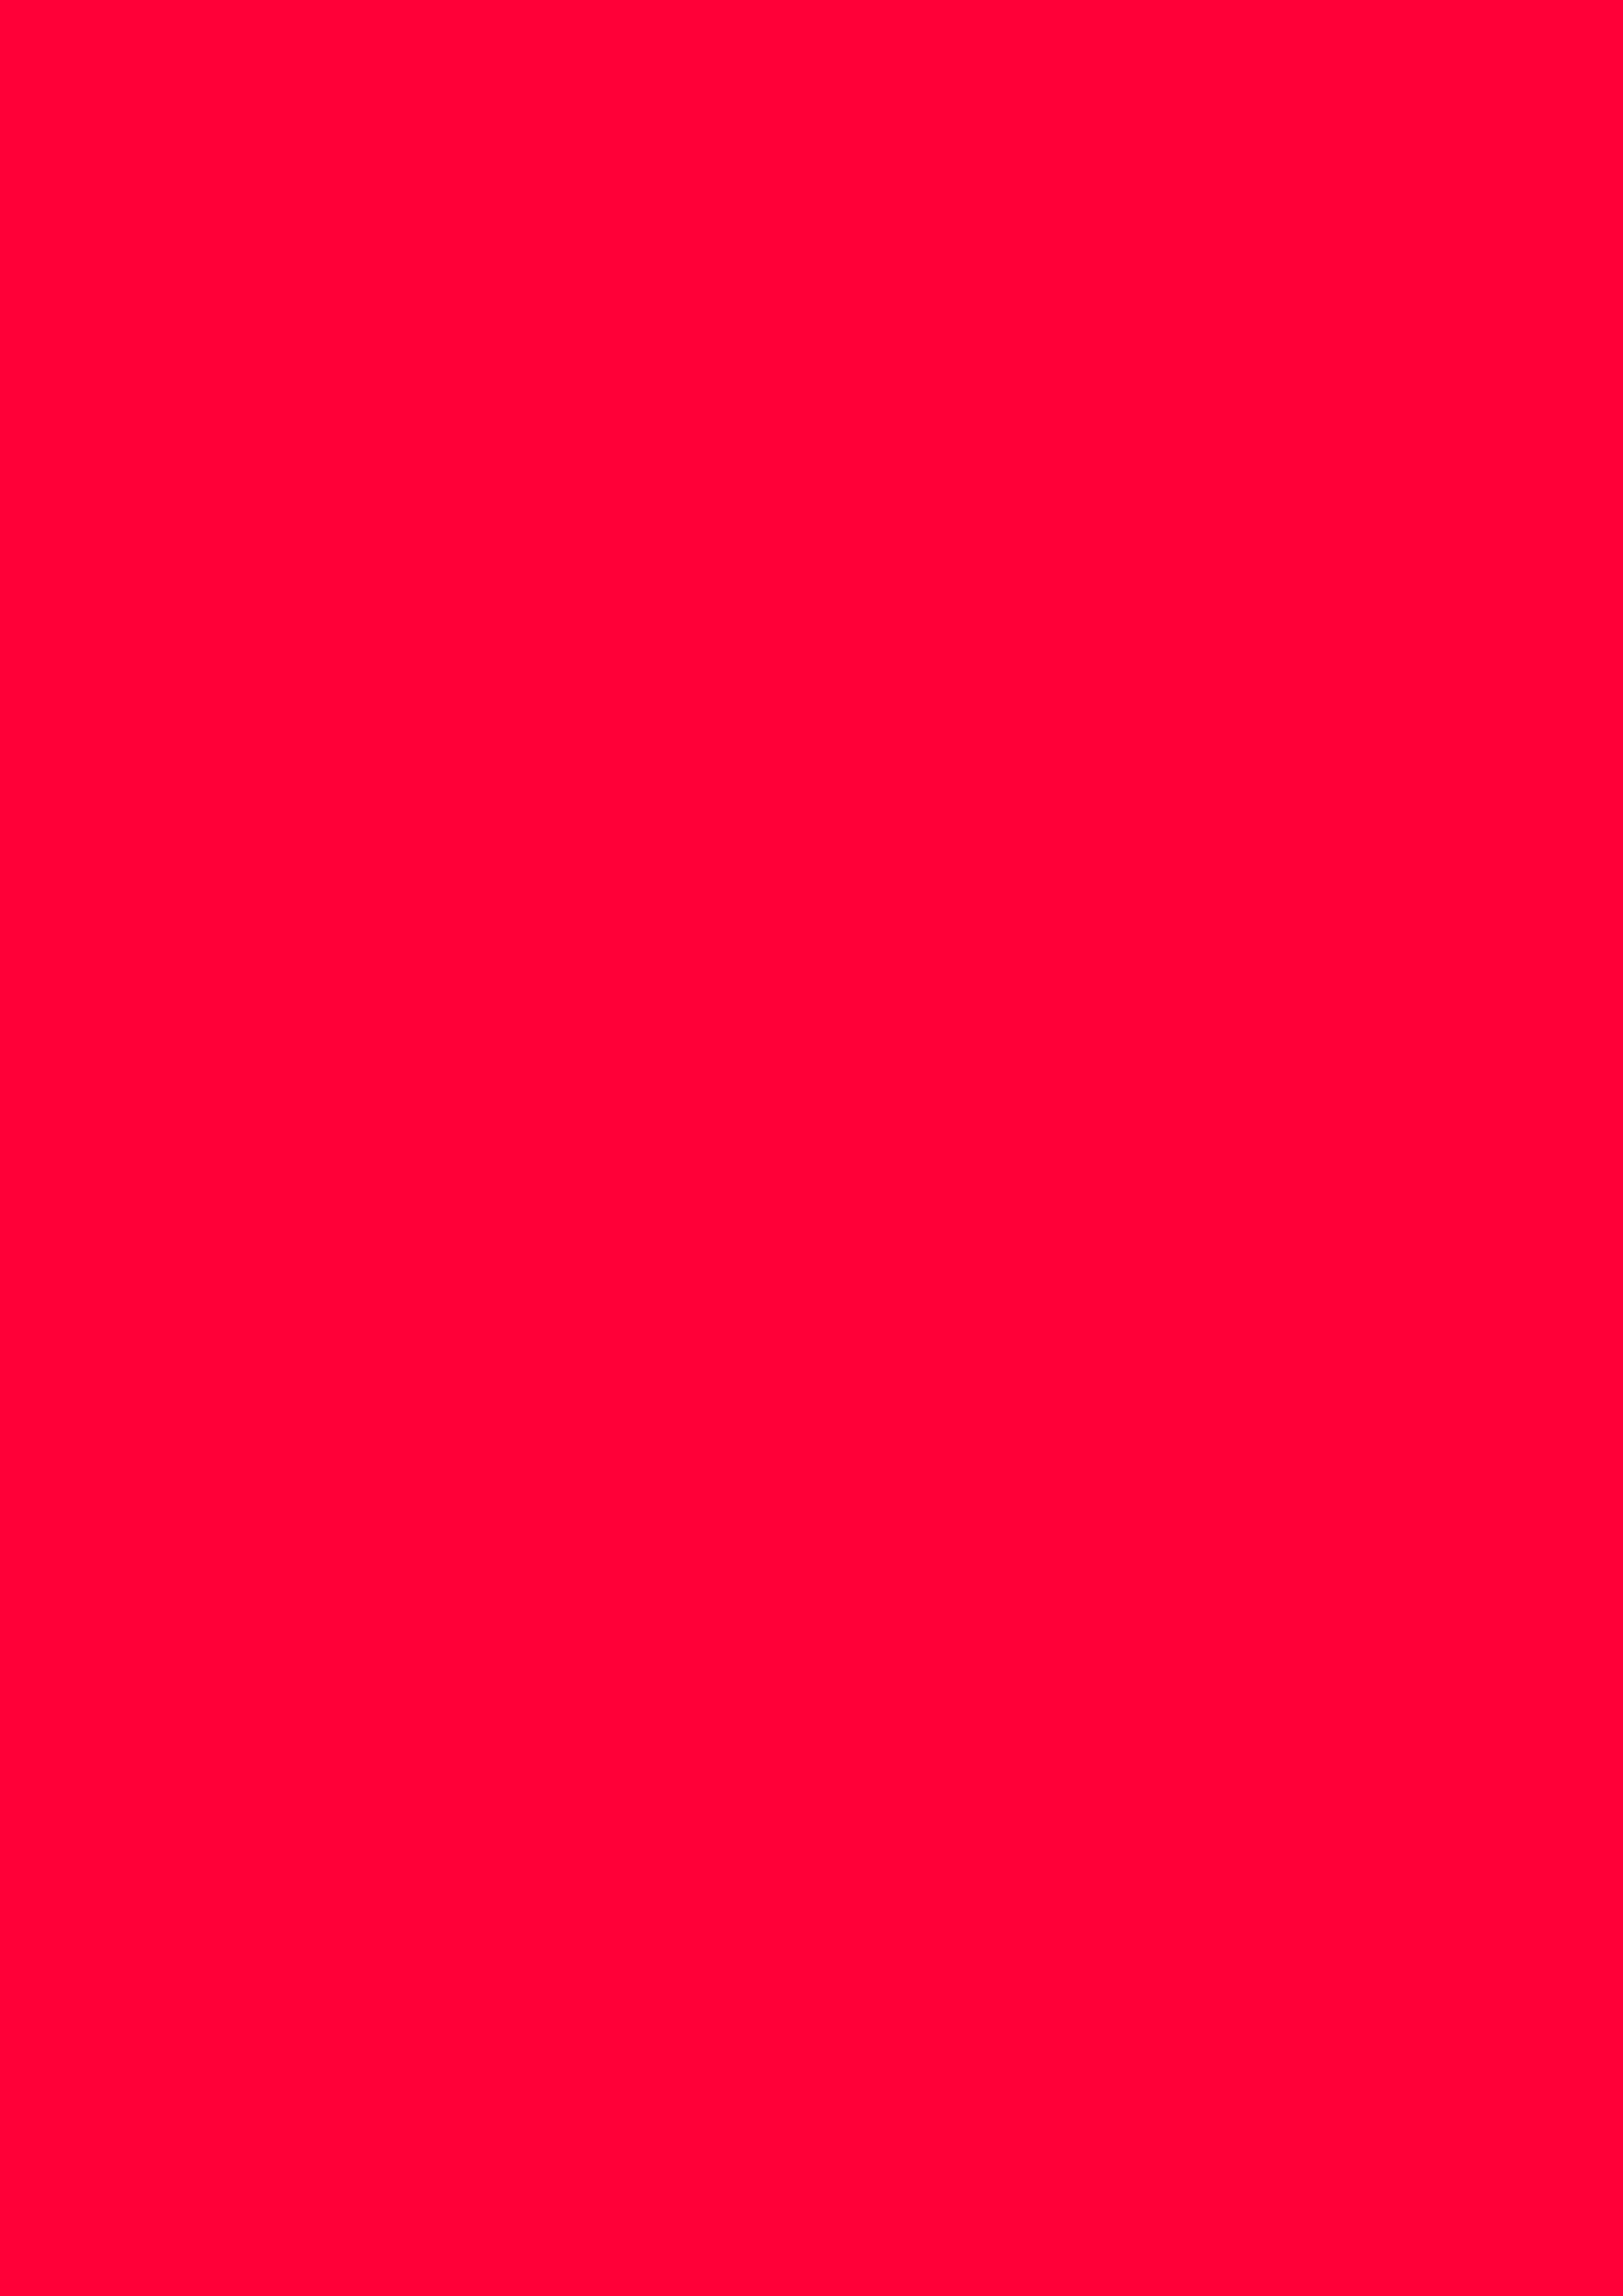 2480x3508 Carmine Red Solid Color Background